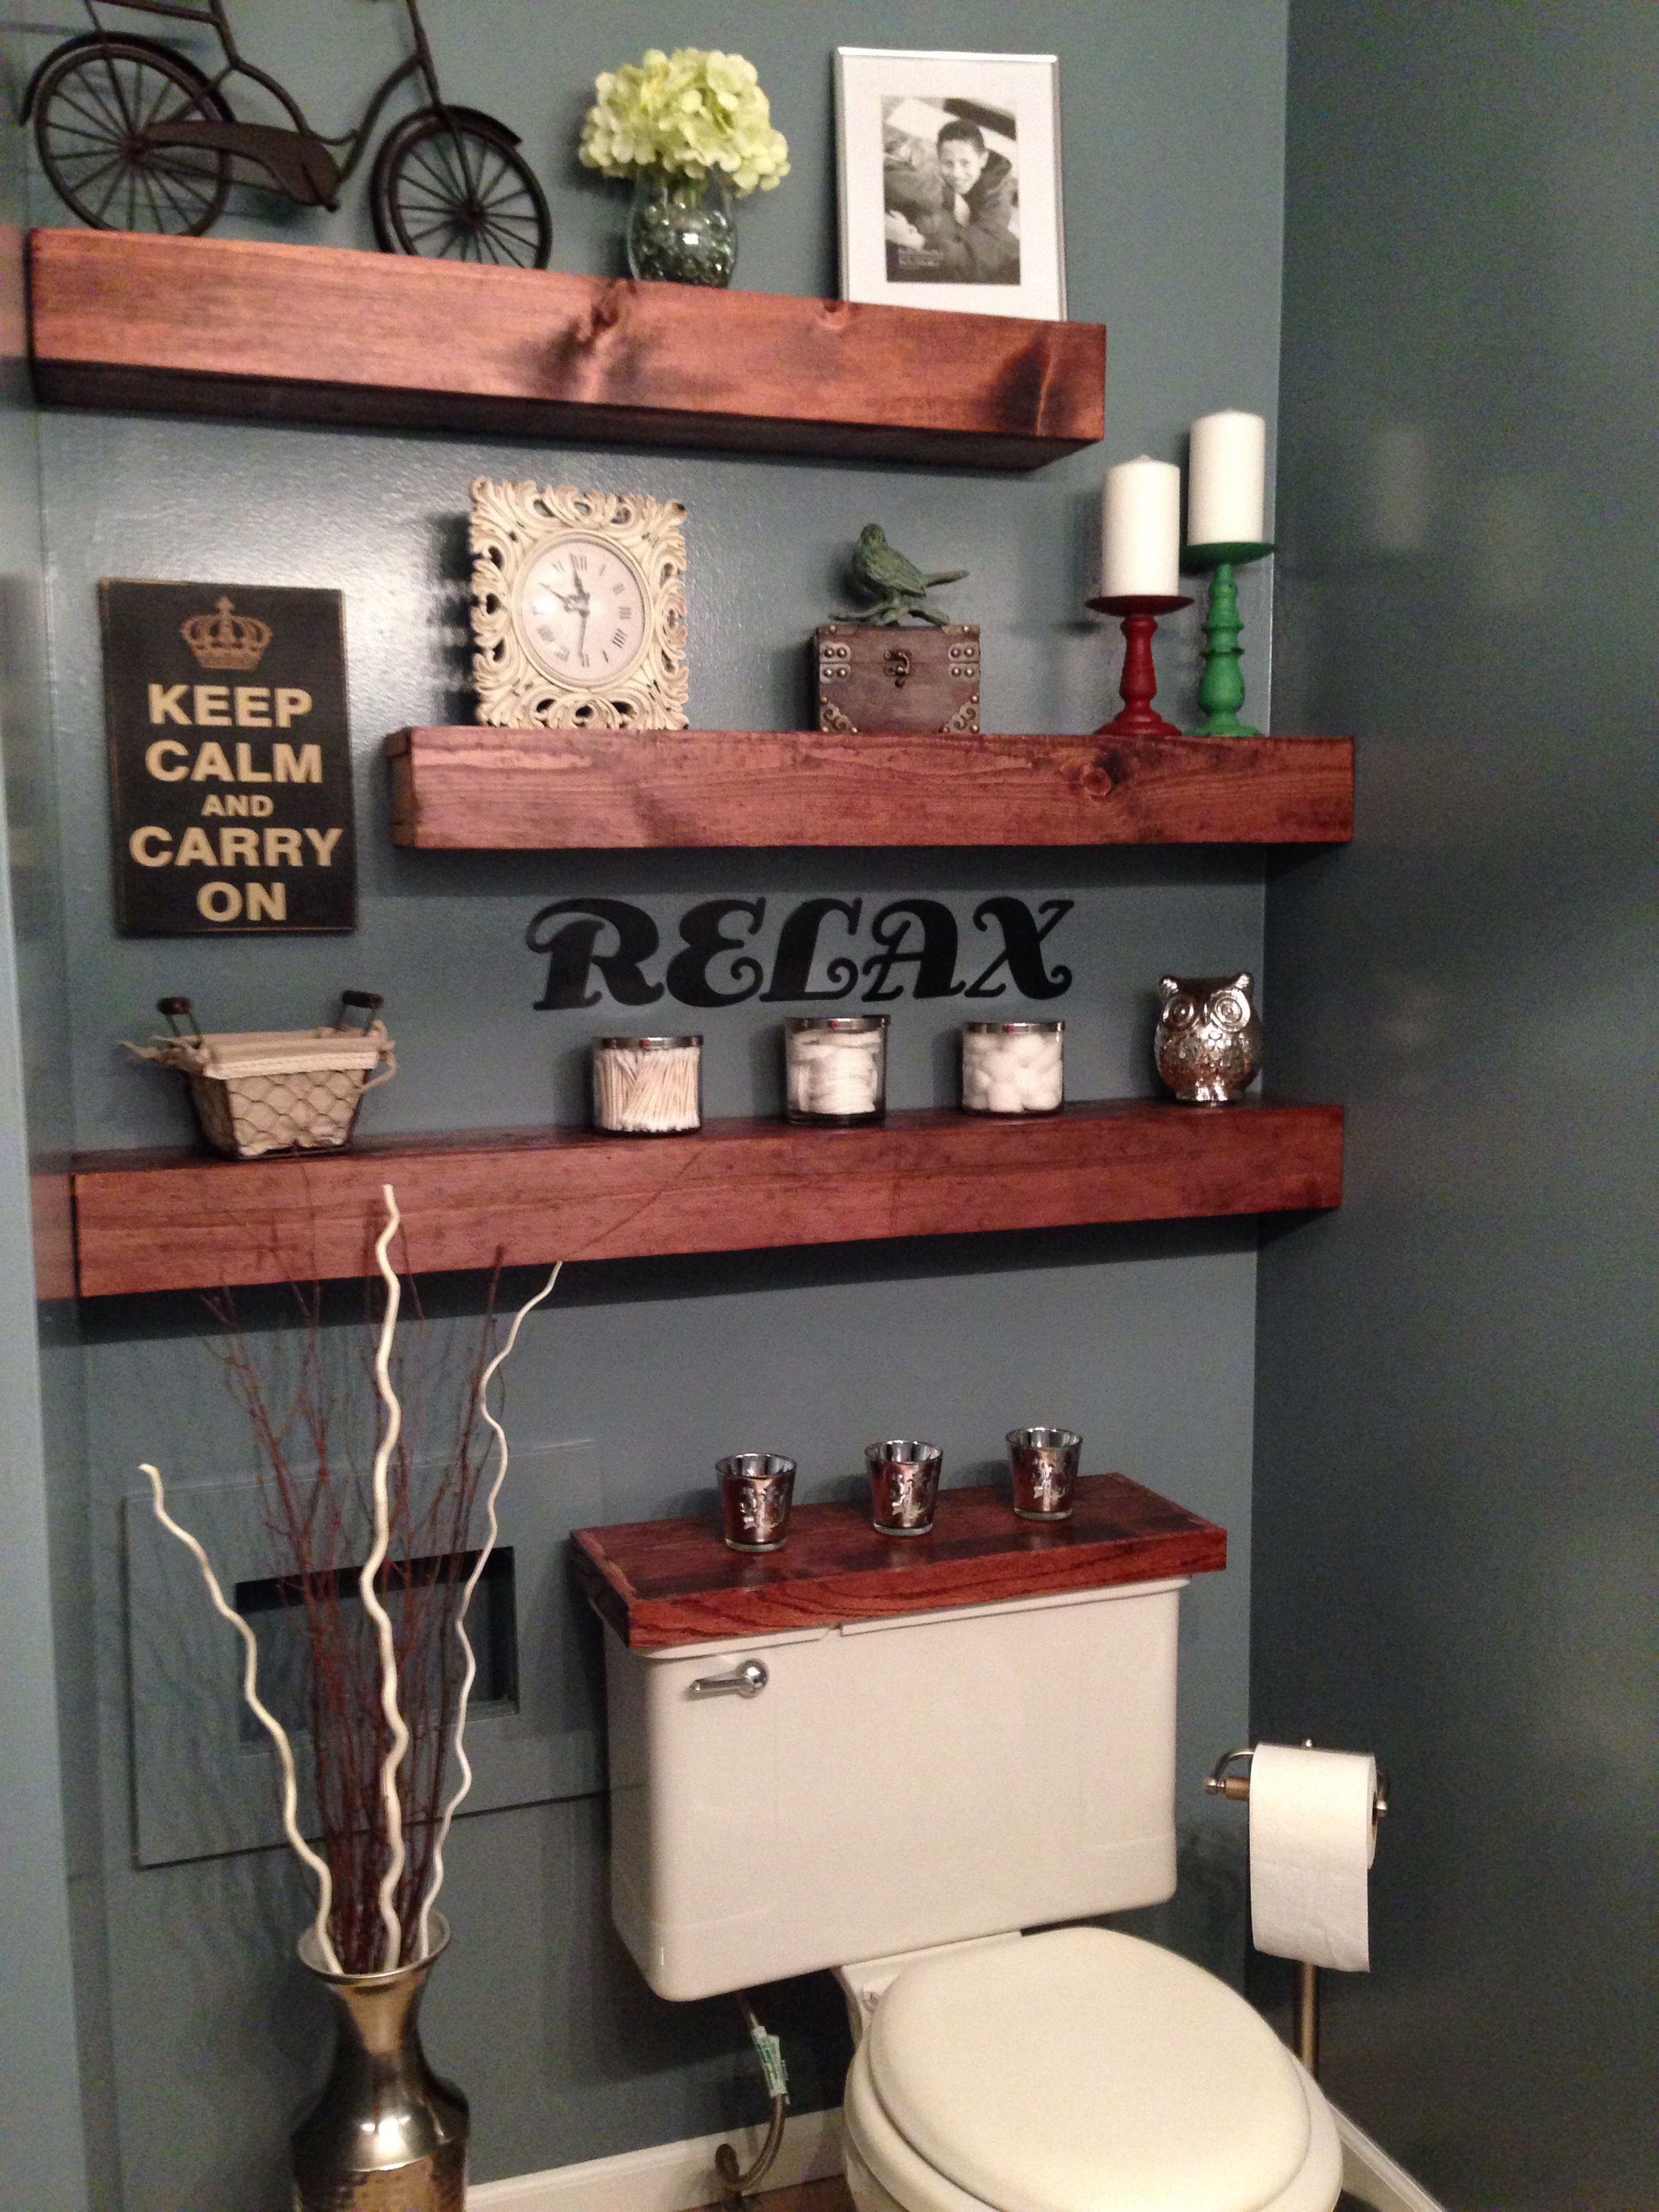 Inspiring And Cool Display Shelf Ideas To Spruce Up The Walls More Bathroom Remodel Bathroom Shelves Toilet Storage Bathroom